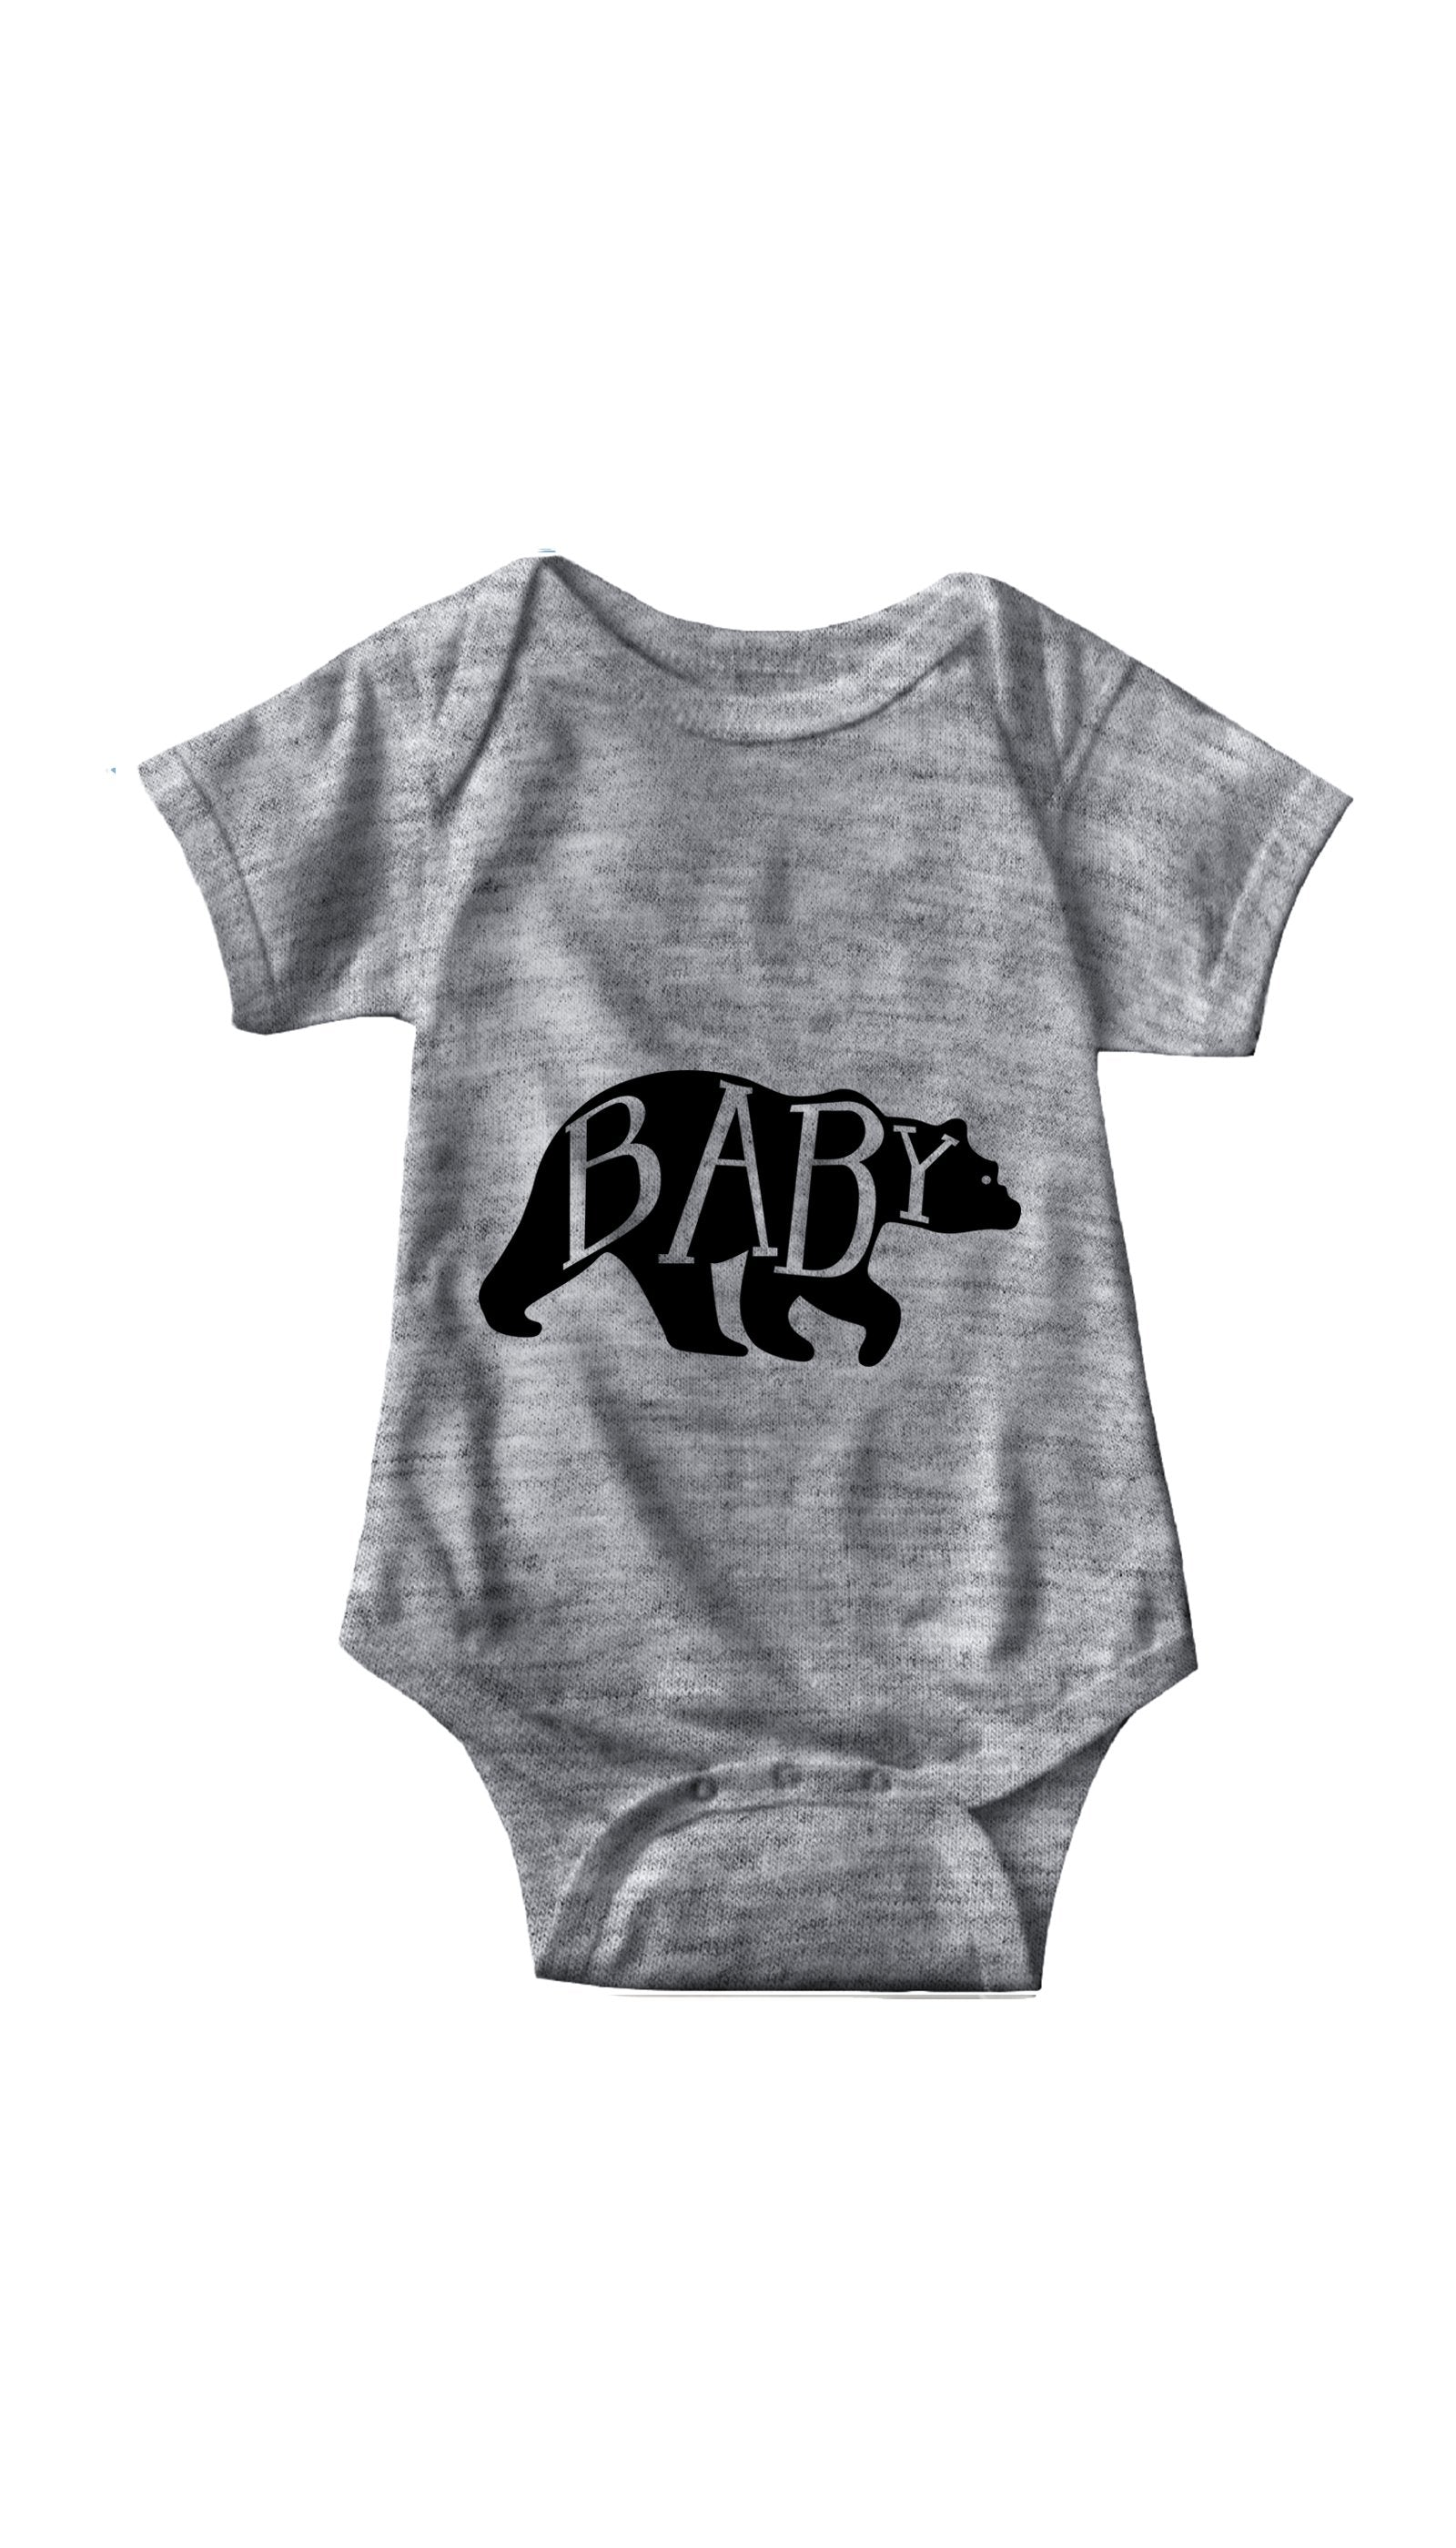 Baby Bear Gray Infant Onesie | Sarcastic ME